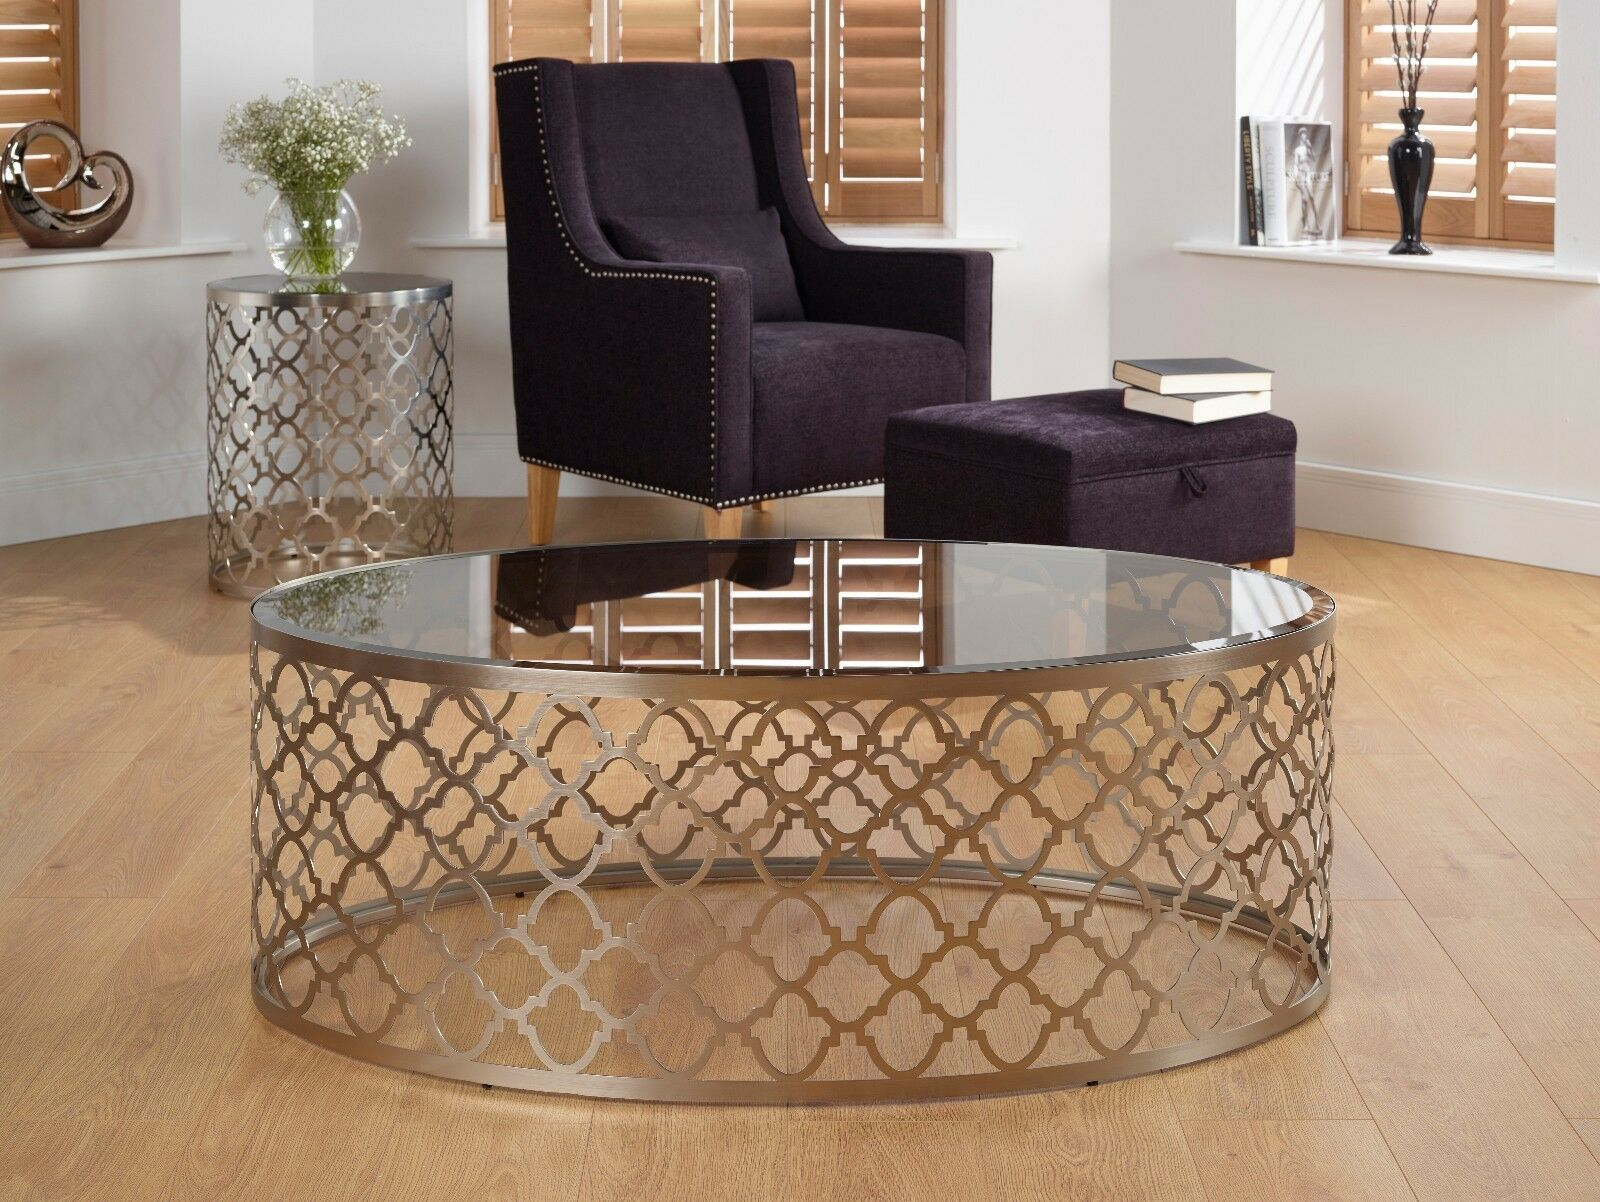 Zenith Oval Glass Top Coffee Table Laser Cut With Satin Metal Base ONLY  £299.99!